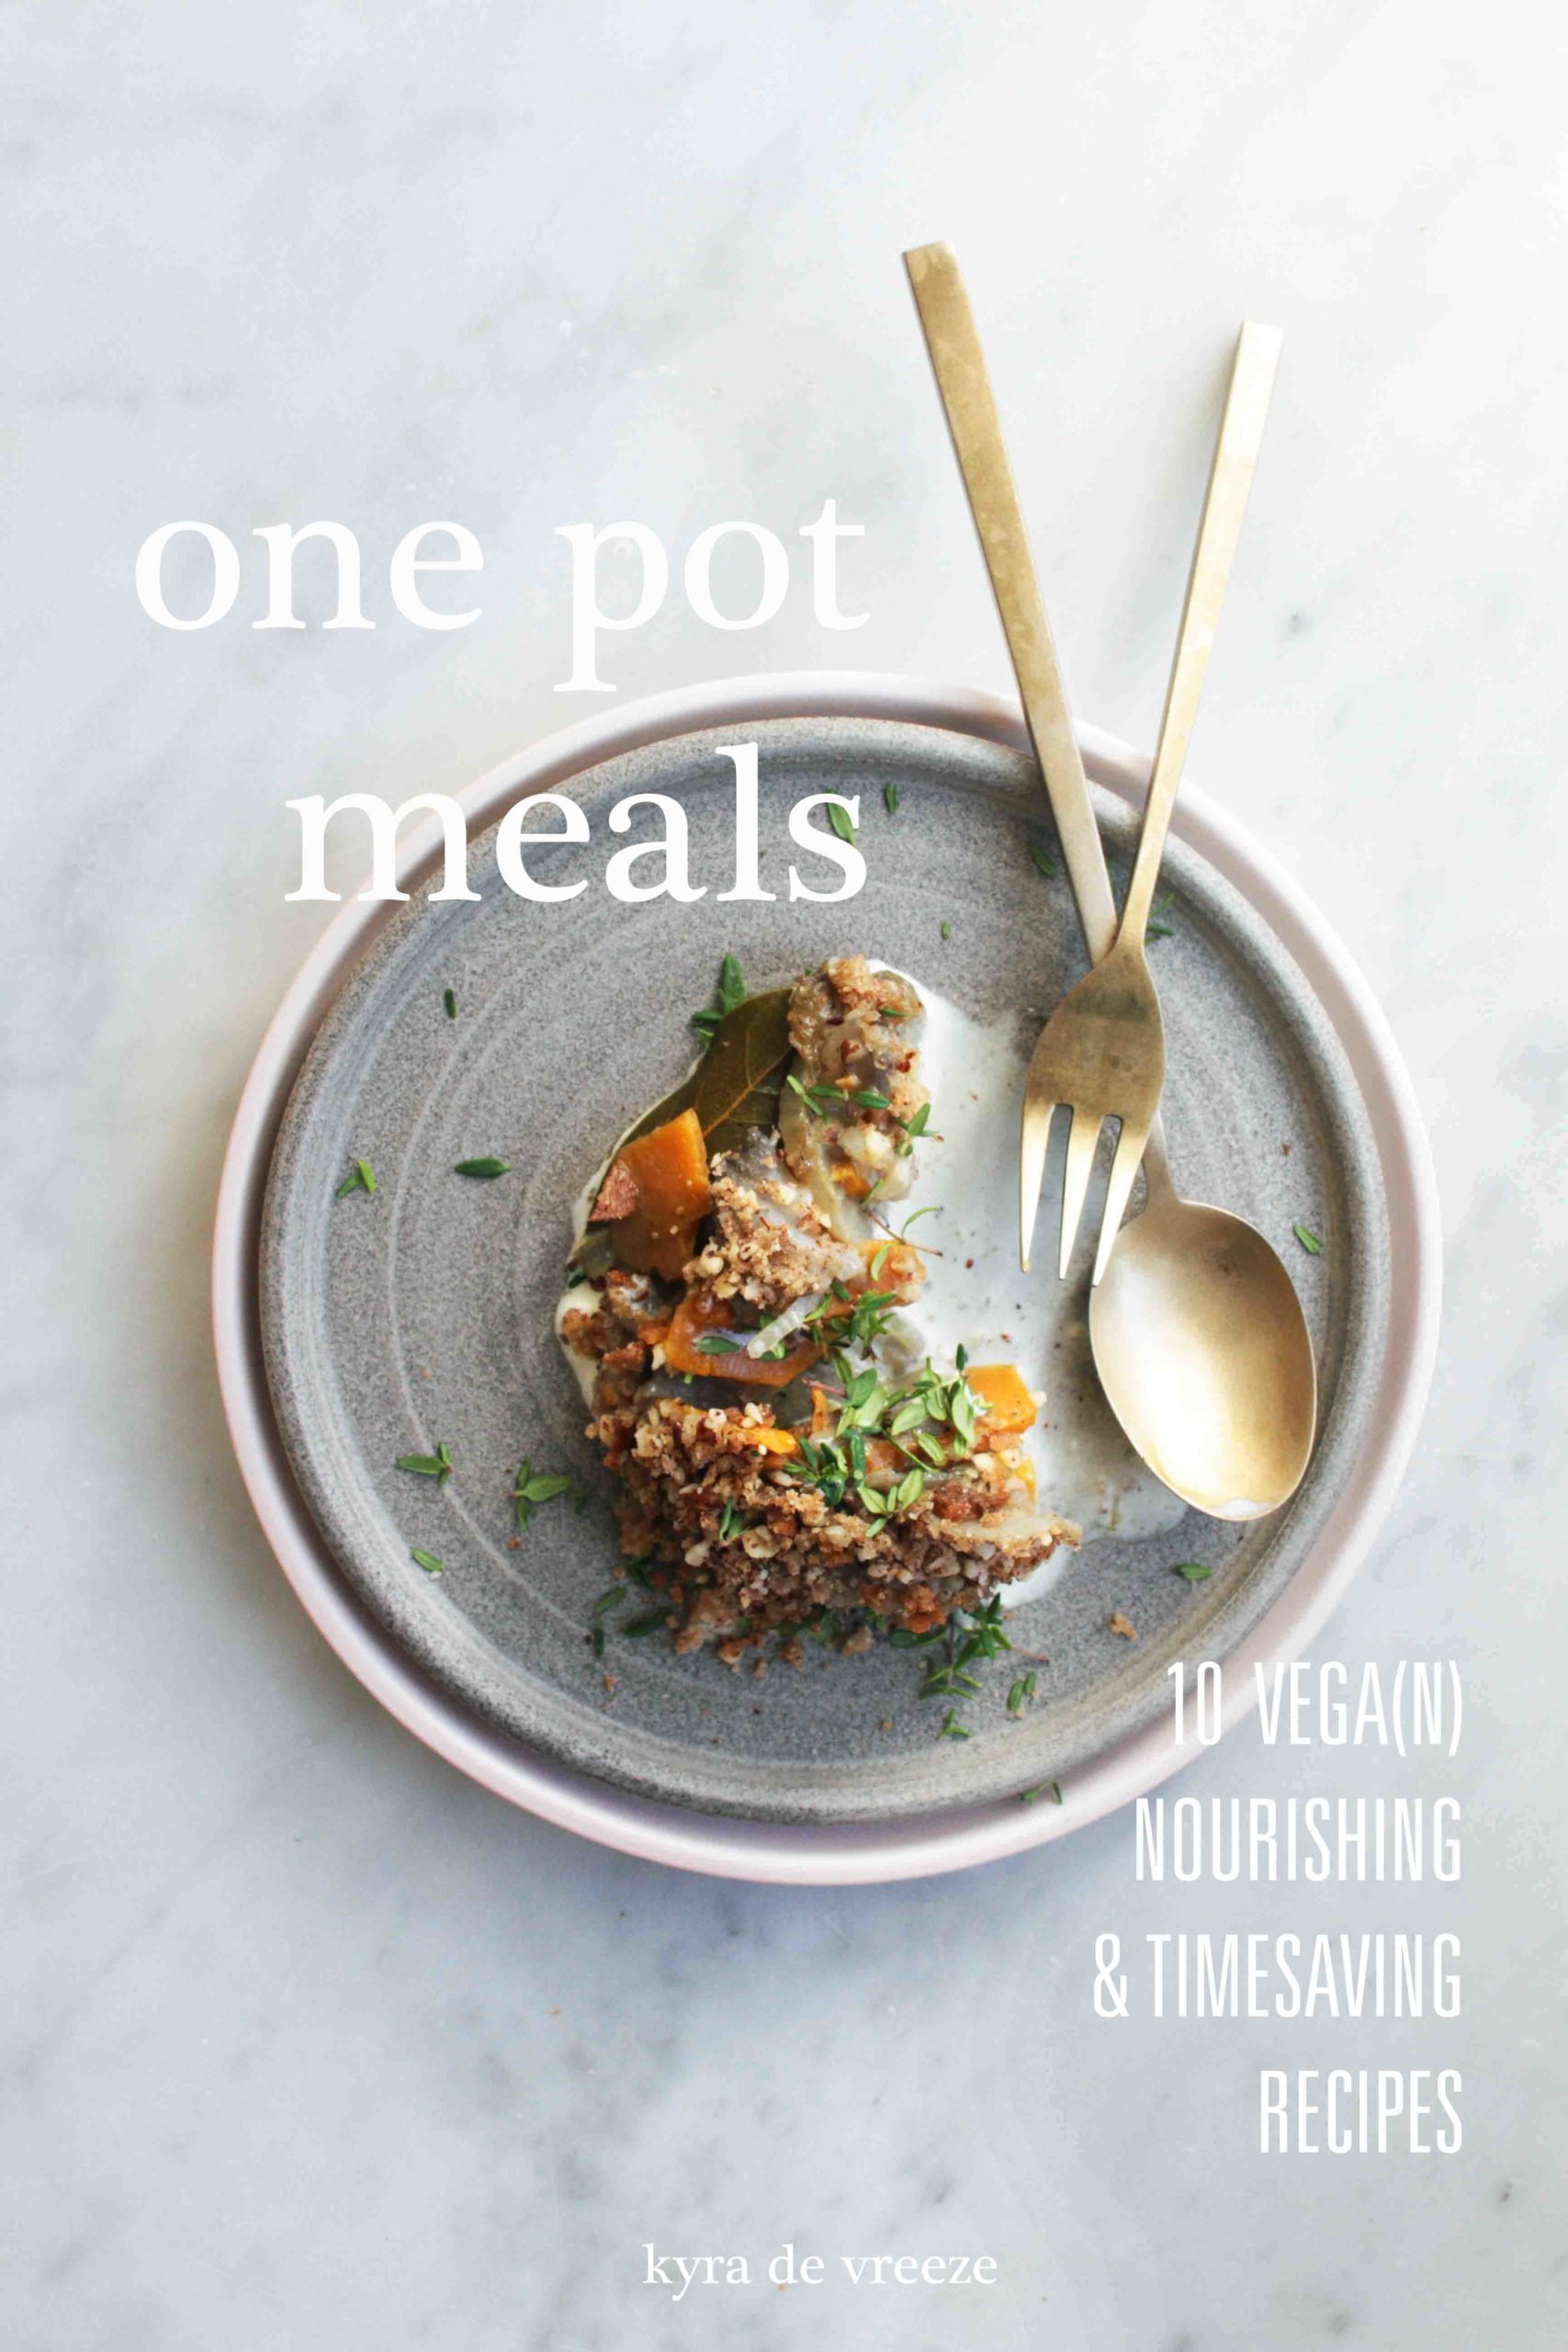 e-book one pot meals, 10 nourishing vegan and timesaving recipes